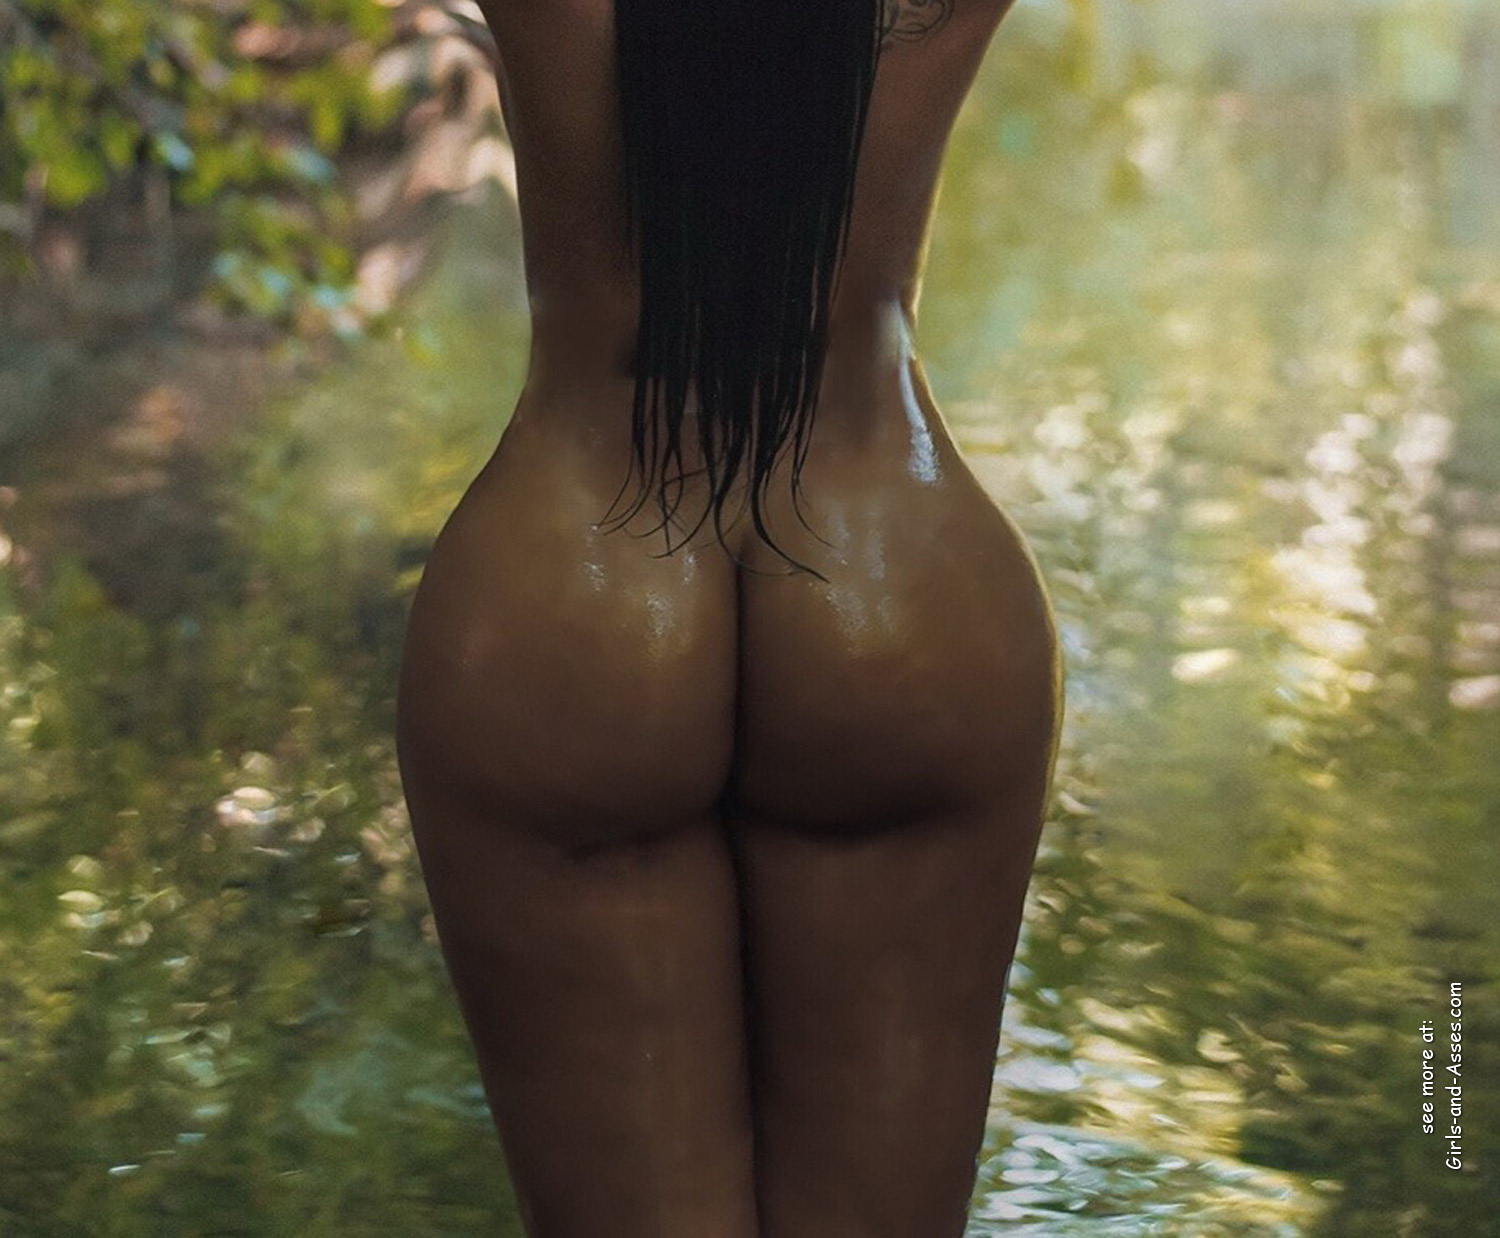 naked girl with big ass in a river picture 04537